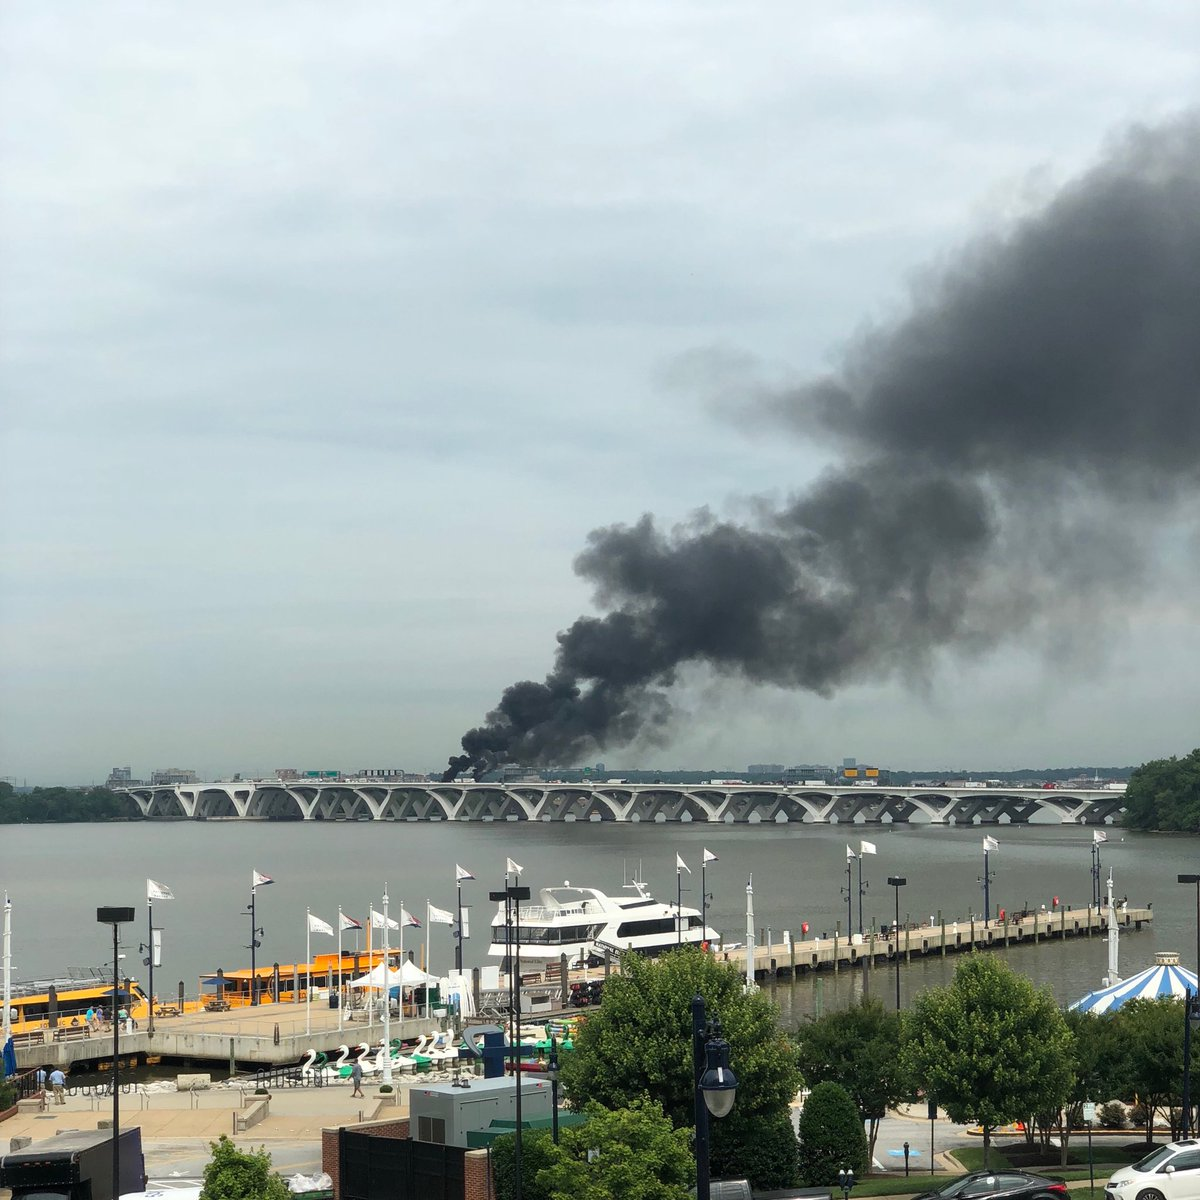 Cars on fire on Woodrow Wilson Bridge, Wednesday, June 20, 2018. (Courtesy{&amp;nbsp;} @CameronJ){&amp;nbsp;}<p></p>